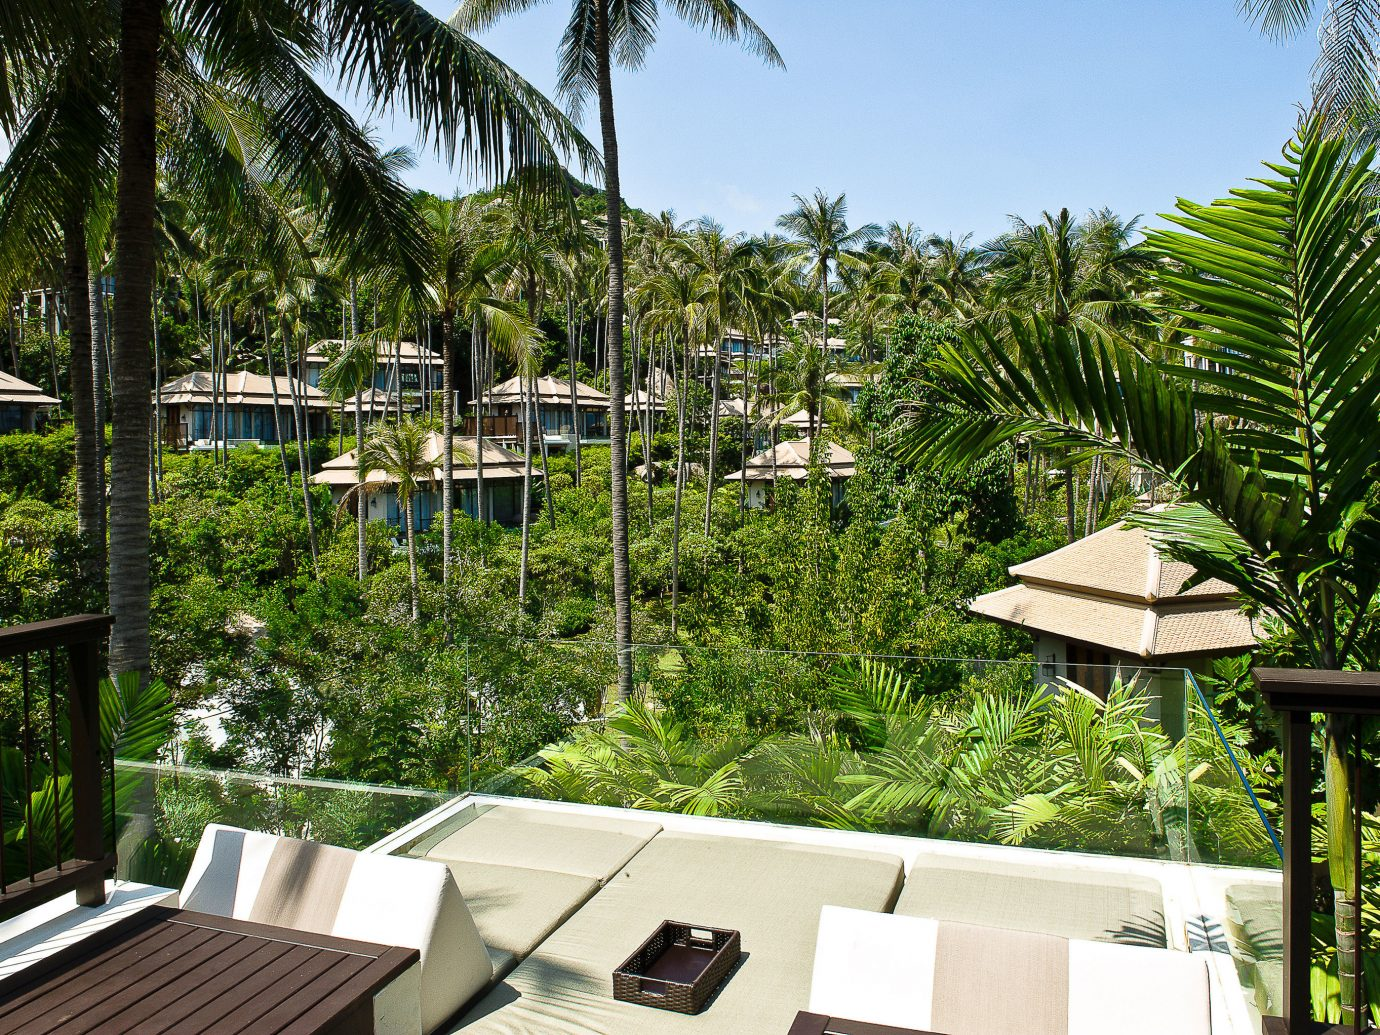 Bungalows At Banyan Tree Sumui Hotel In Thailand